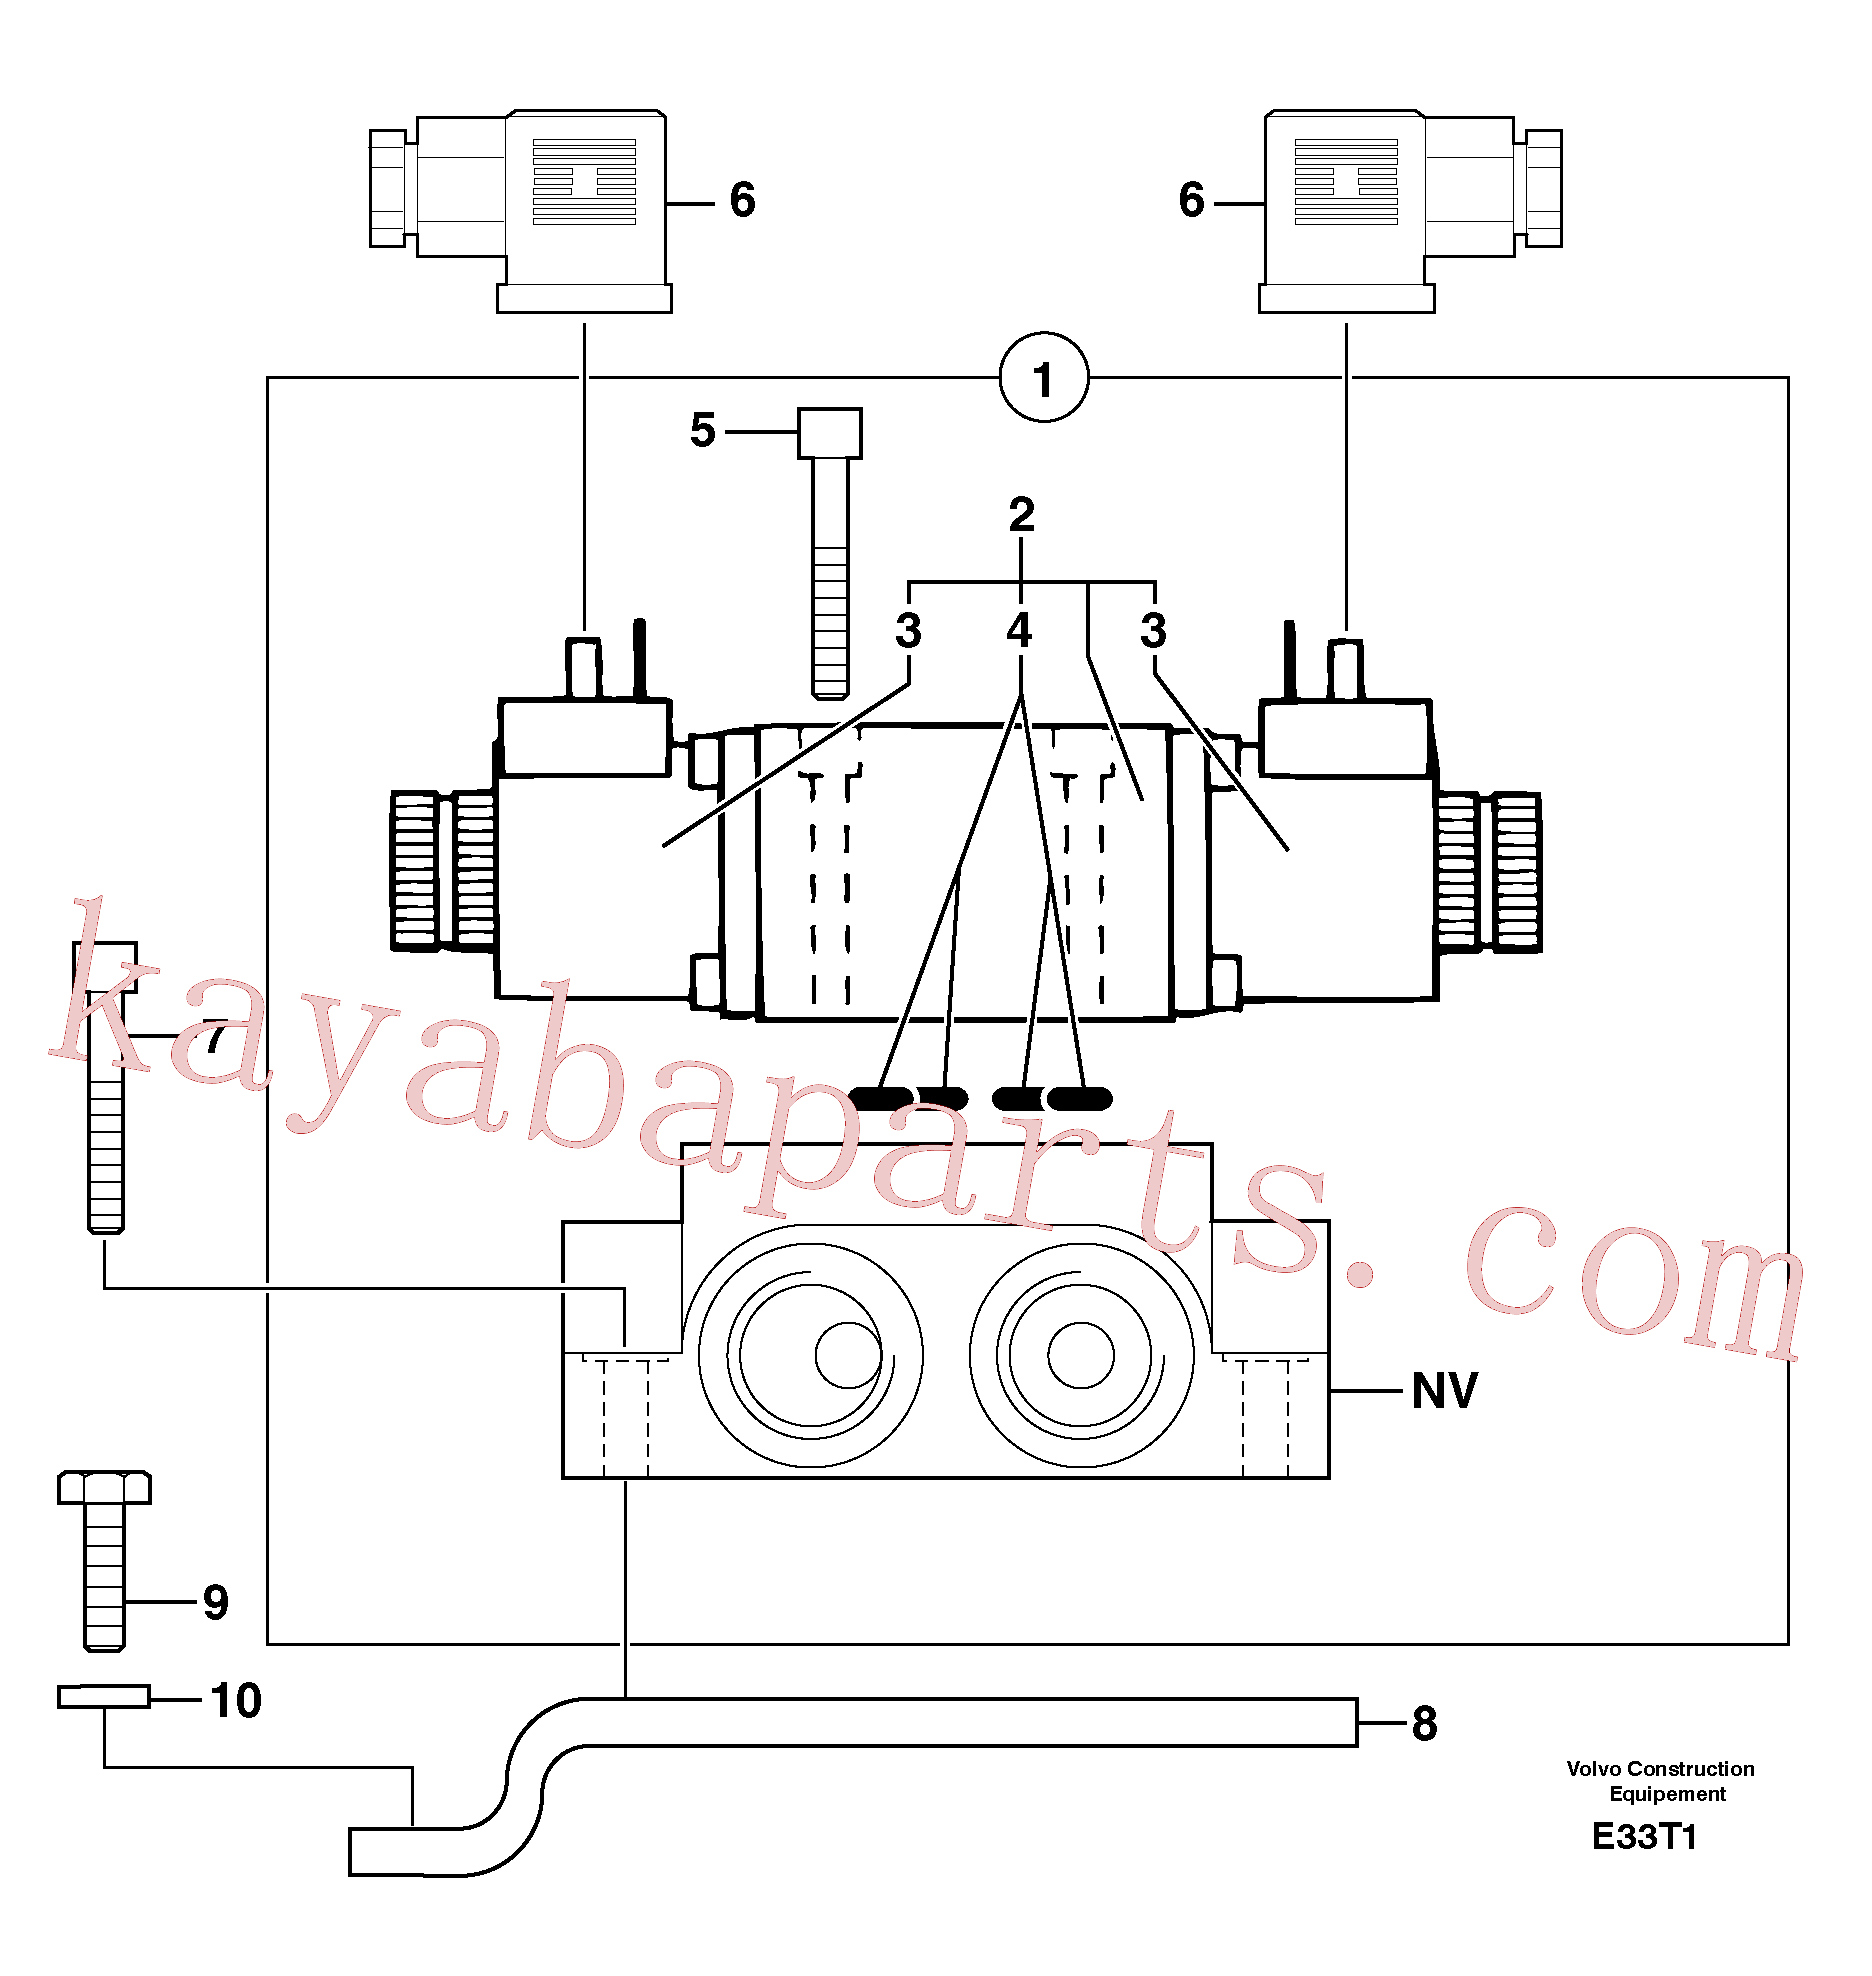 PJ4040197 for Volvo Electrovalve : accessories(E33T1 assembly)